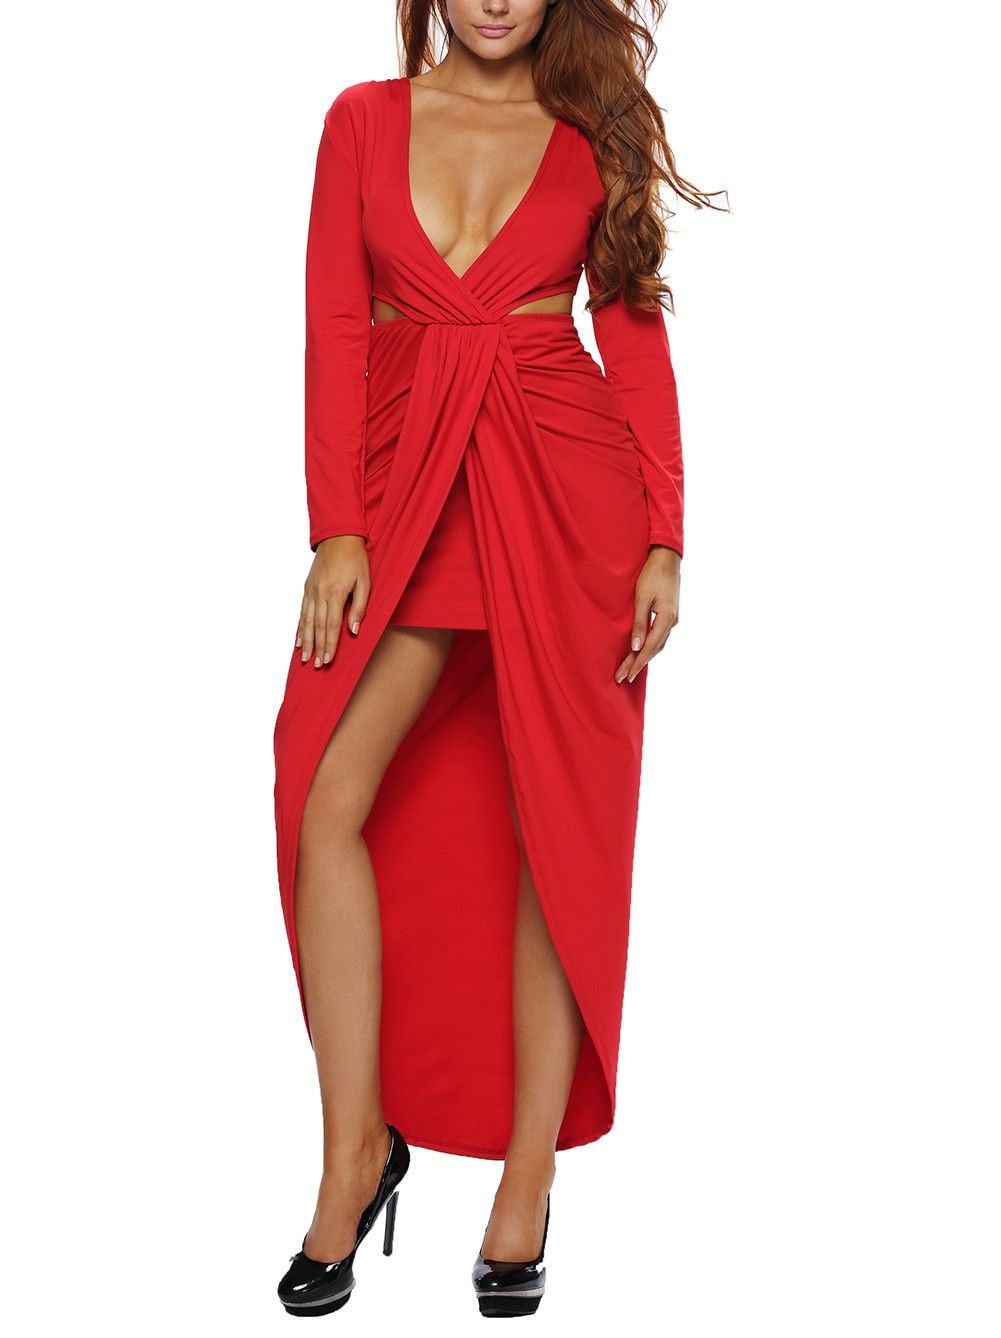 Red wrap around kenny dress fashion pinterest products